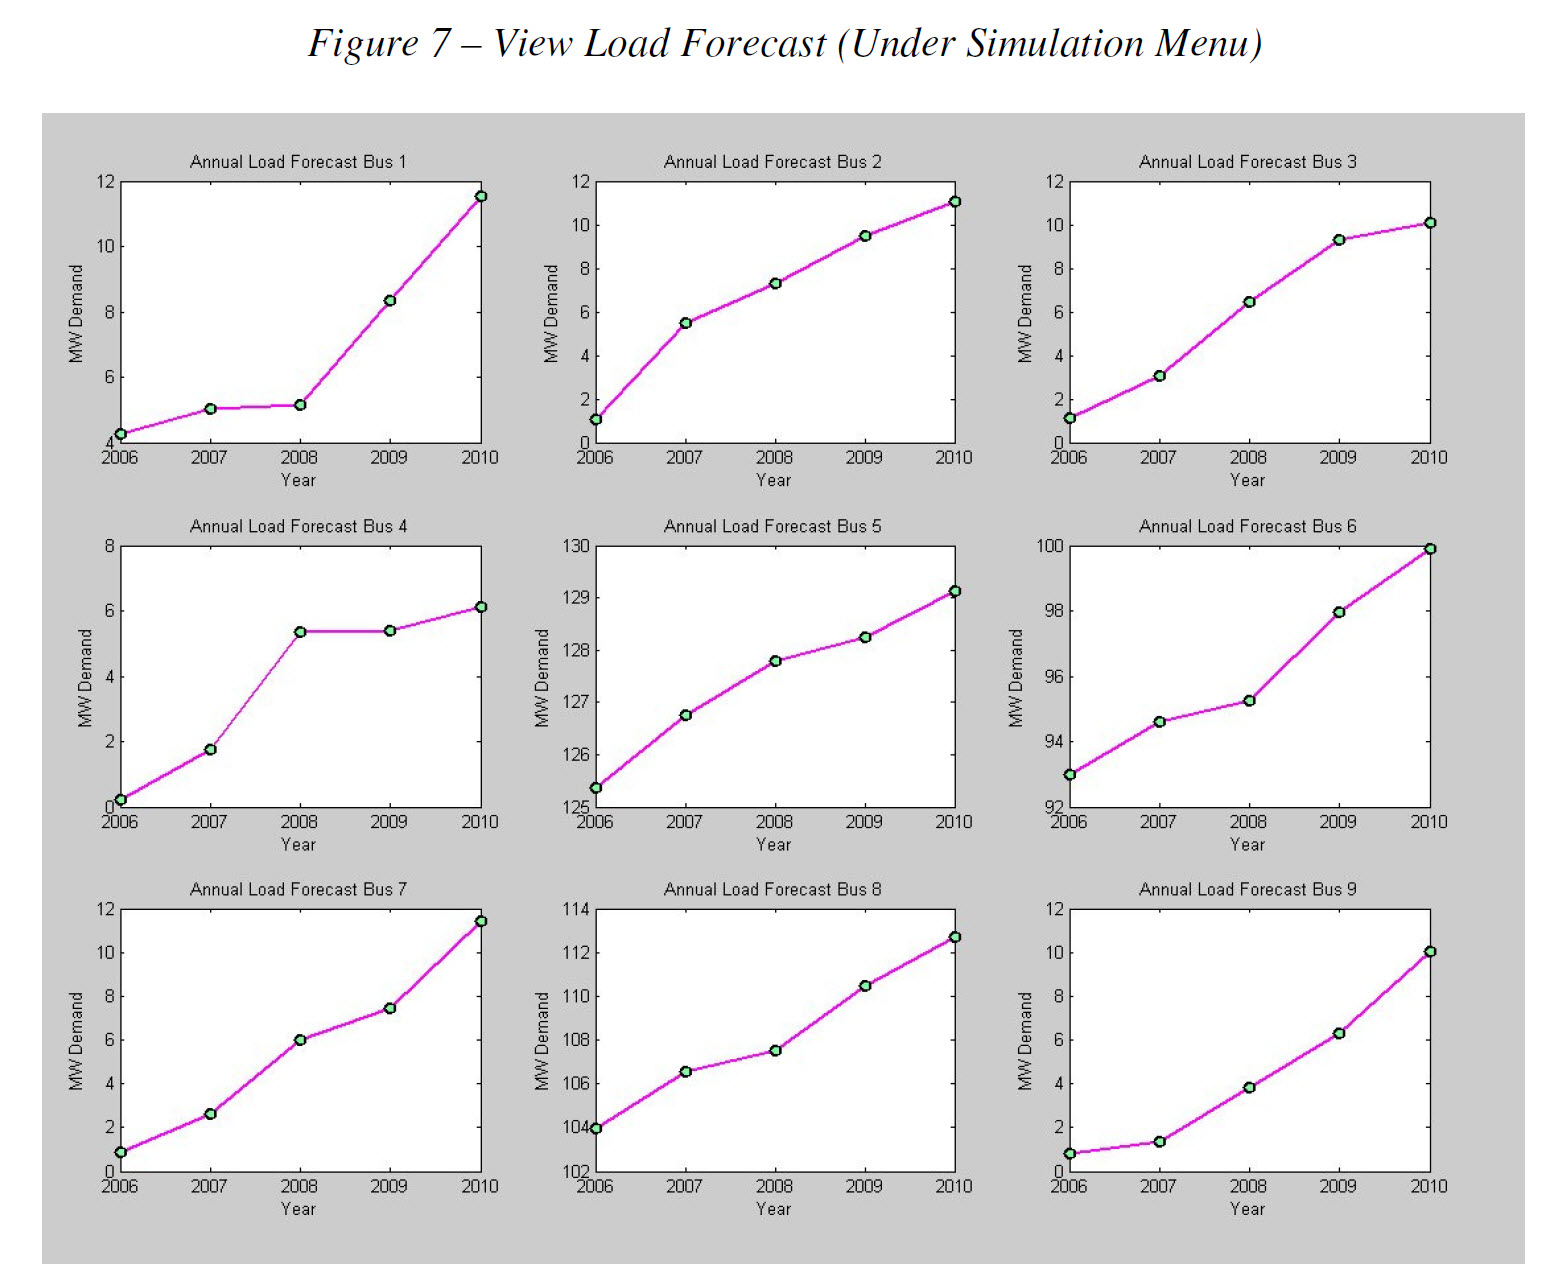 View of Load Forecast Graphs for Each Bus